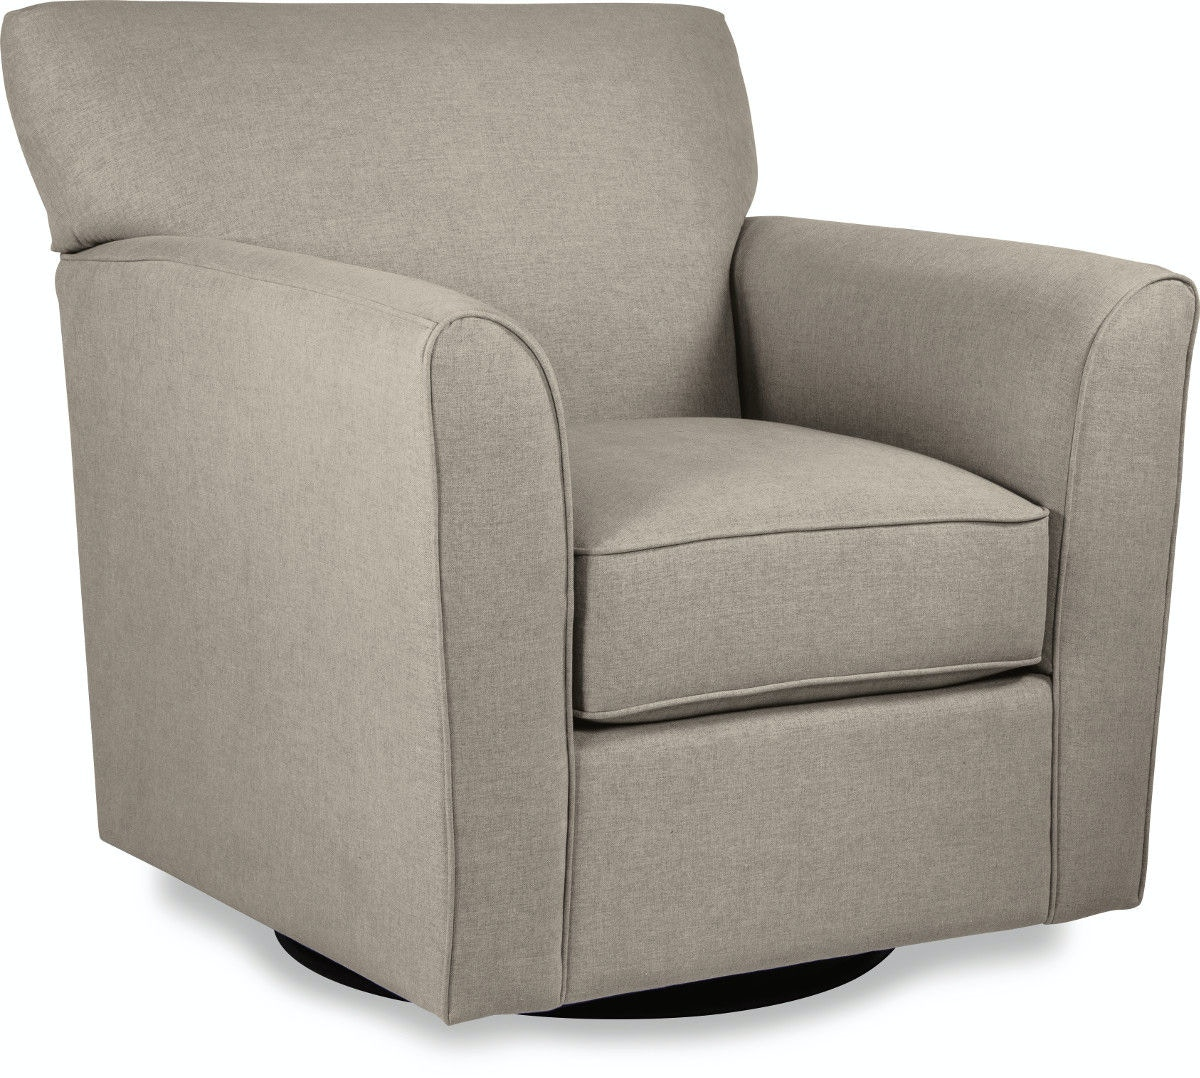 Ordinaire Living Room La Z Boy® Premier Swivel Occasional Chair 215401   Indiana  Furniture And Mattress   Valparaiso, IN